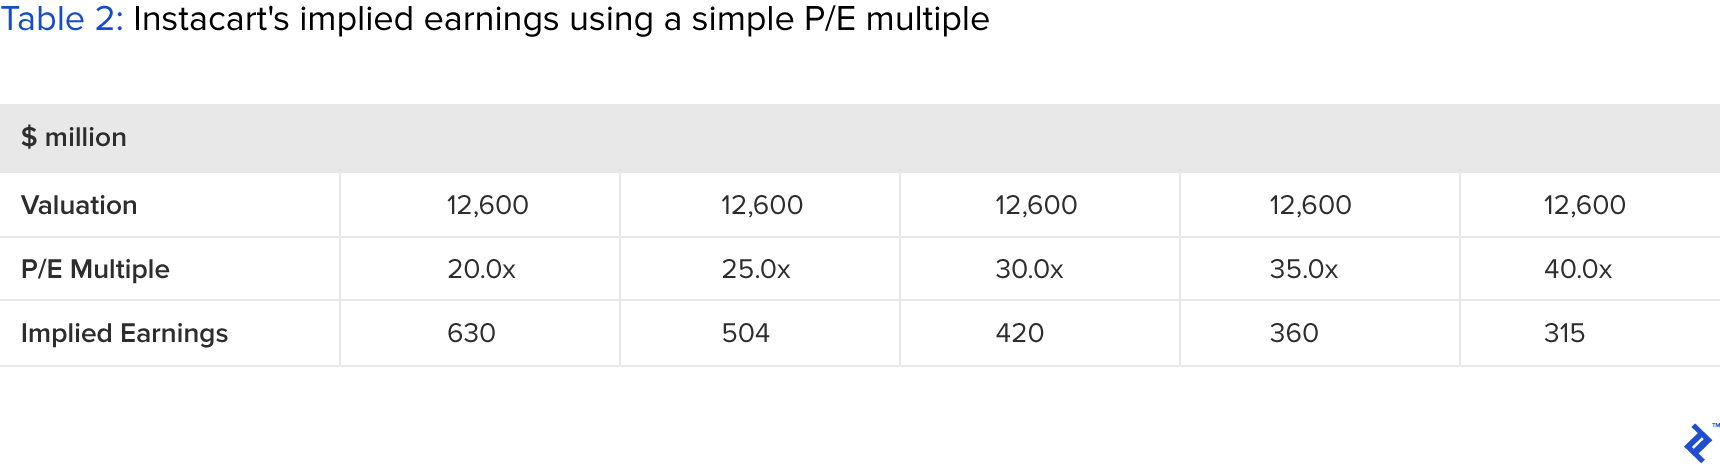 table showing instacart's implied earnings using a simple p/e multiple